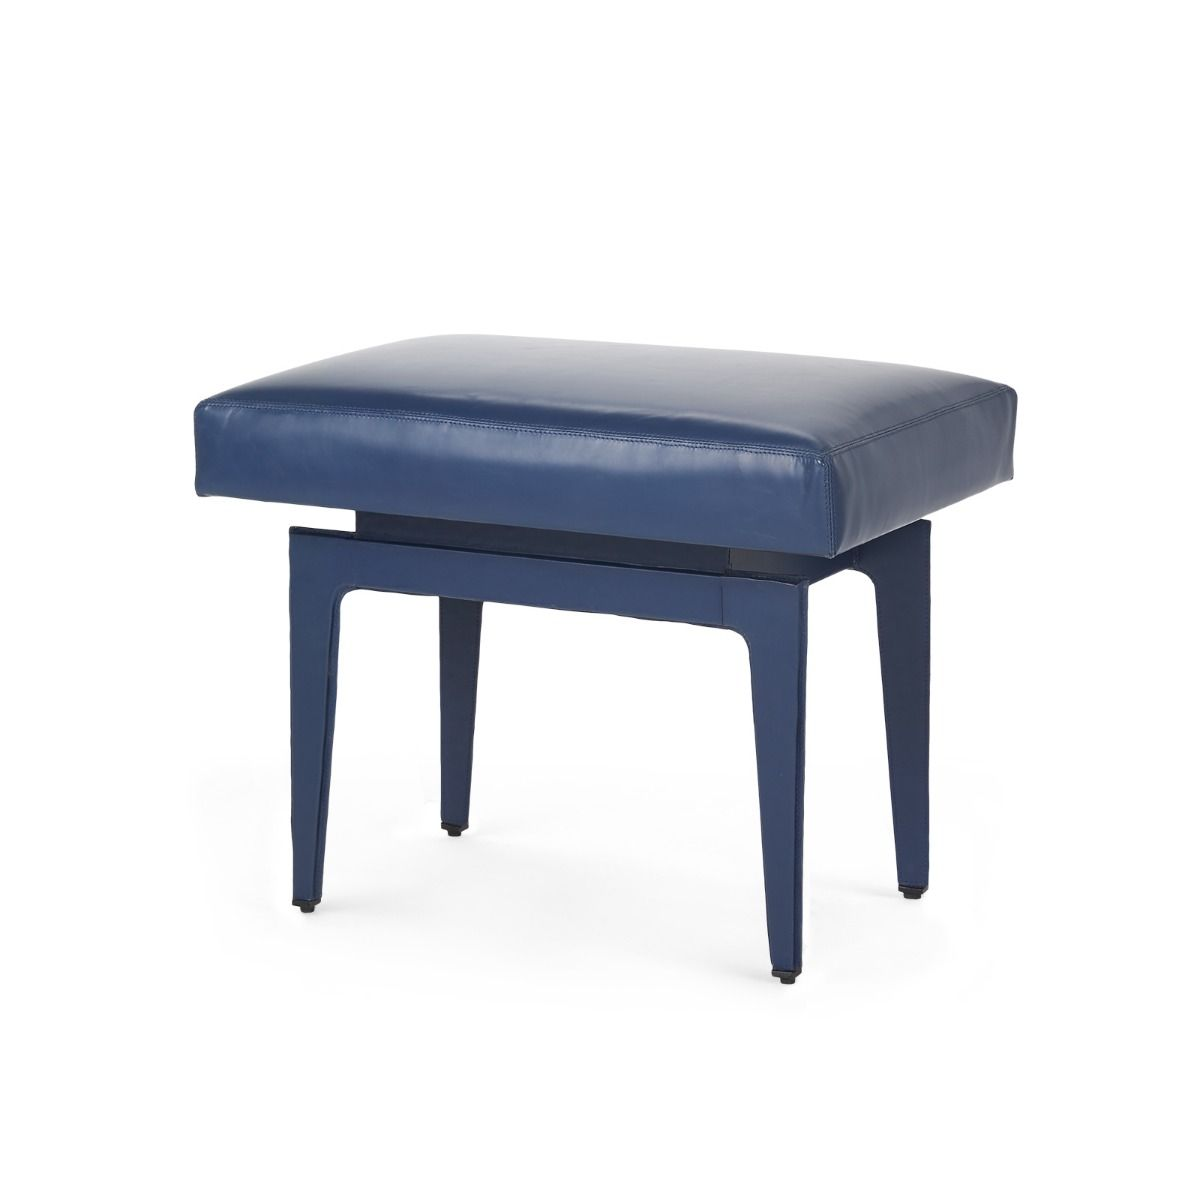 Bungalow 5 - Winston Stool - Navy Blue-Bungalow 5-Blue Hand Home